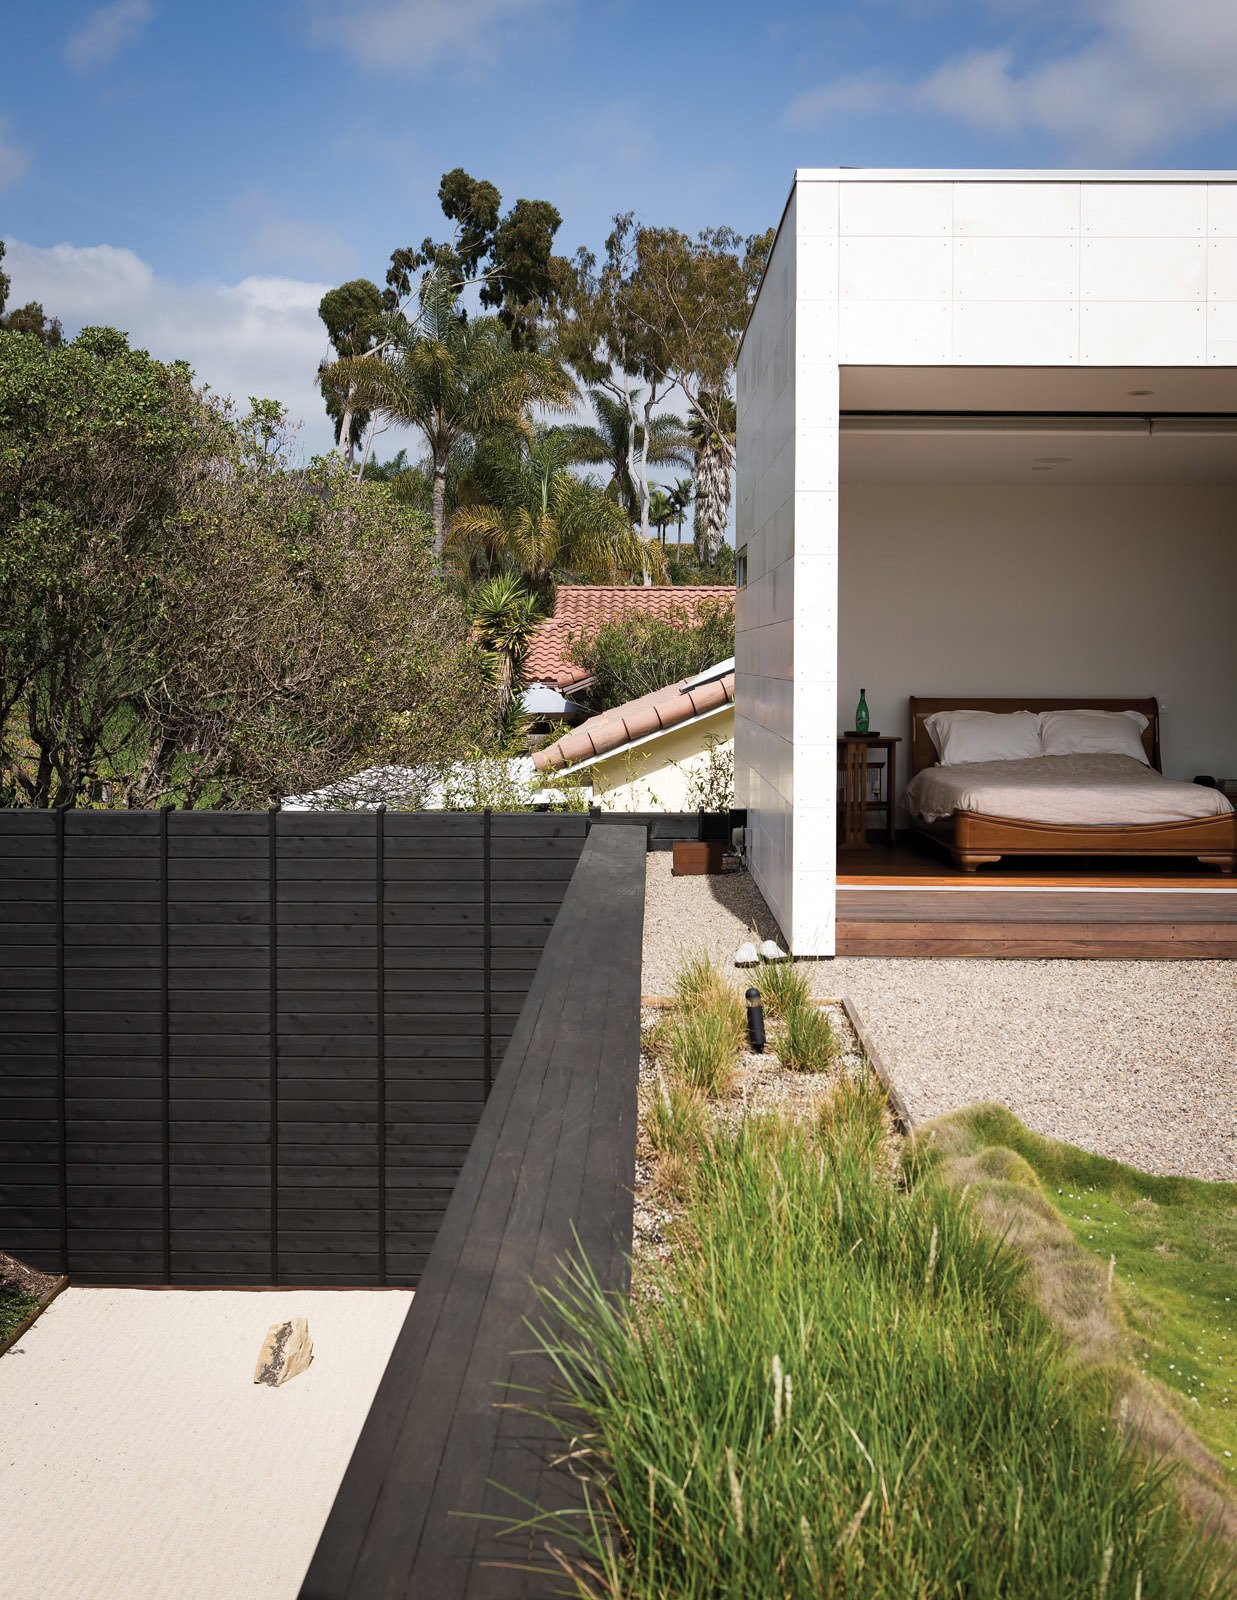 The limestone-clad volume at the east end of the house extends to the second story, housing Shino and Ken's master suite, which opens onto the planted roof deck. Tagged: Bedroom and Bed.  Bedrooms by Dwell from An Atypical Modern Home in Southern California